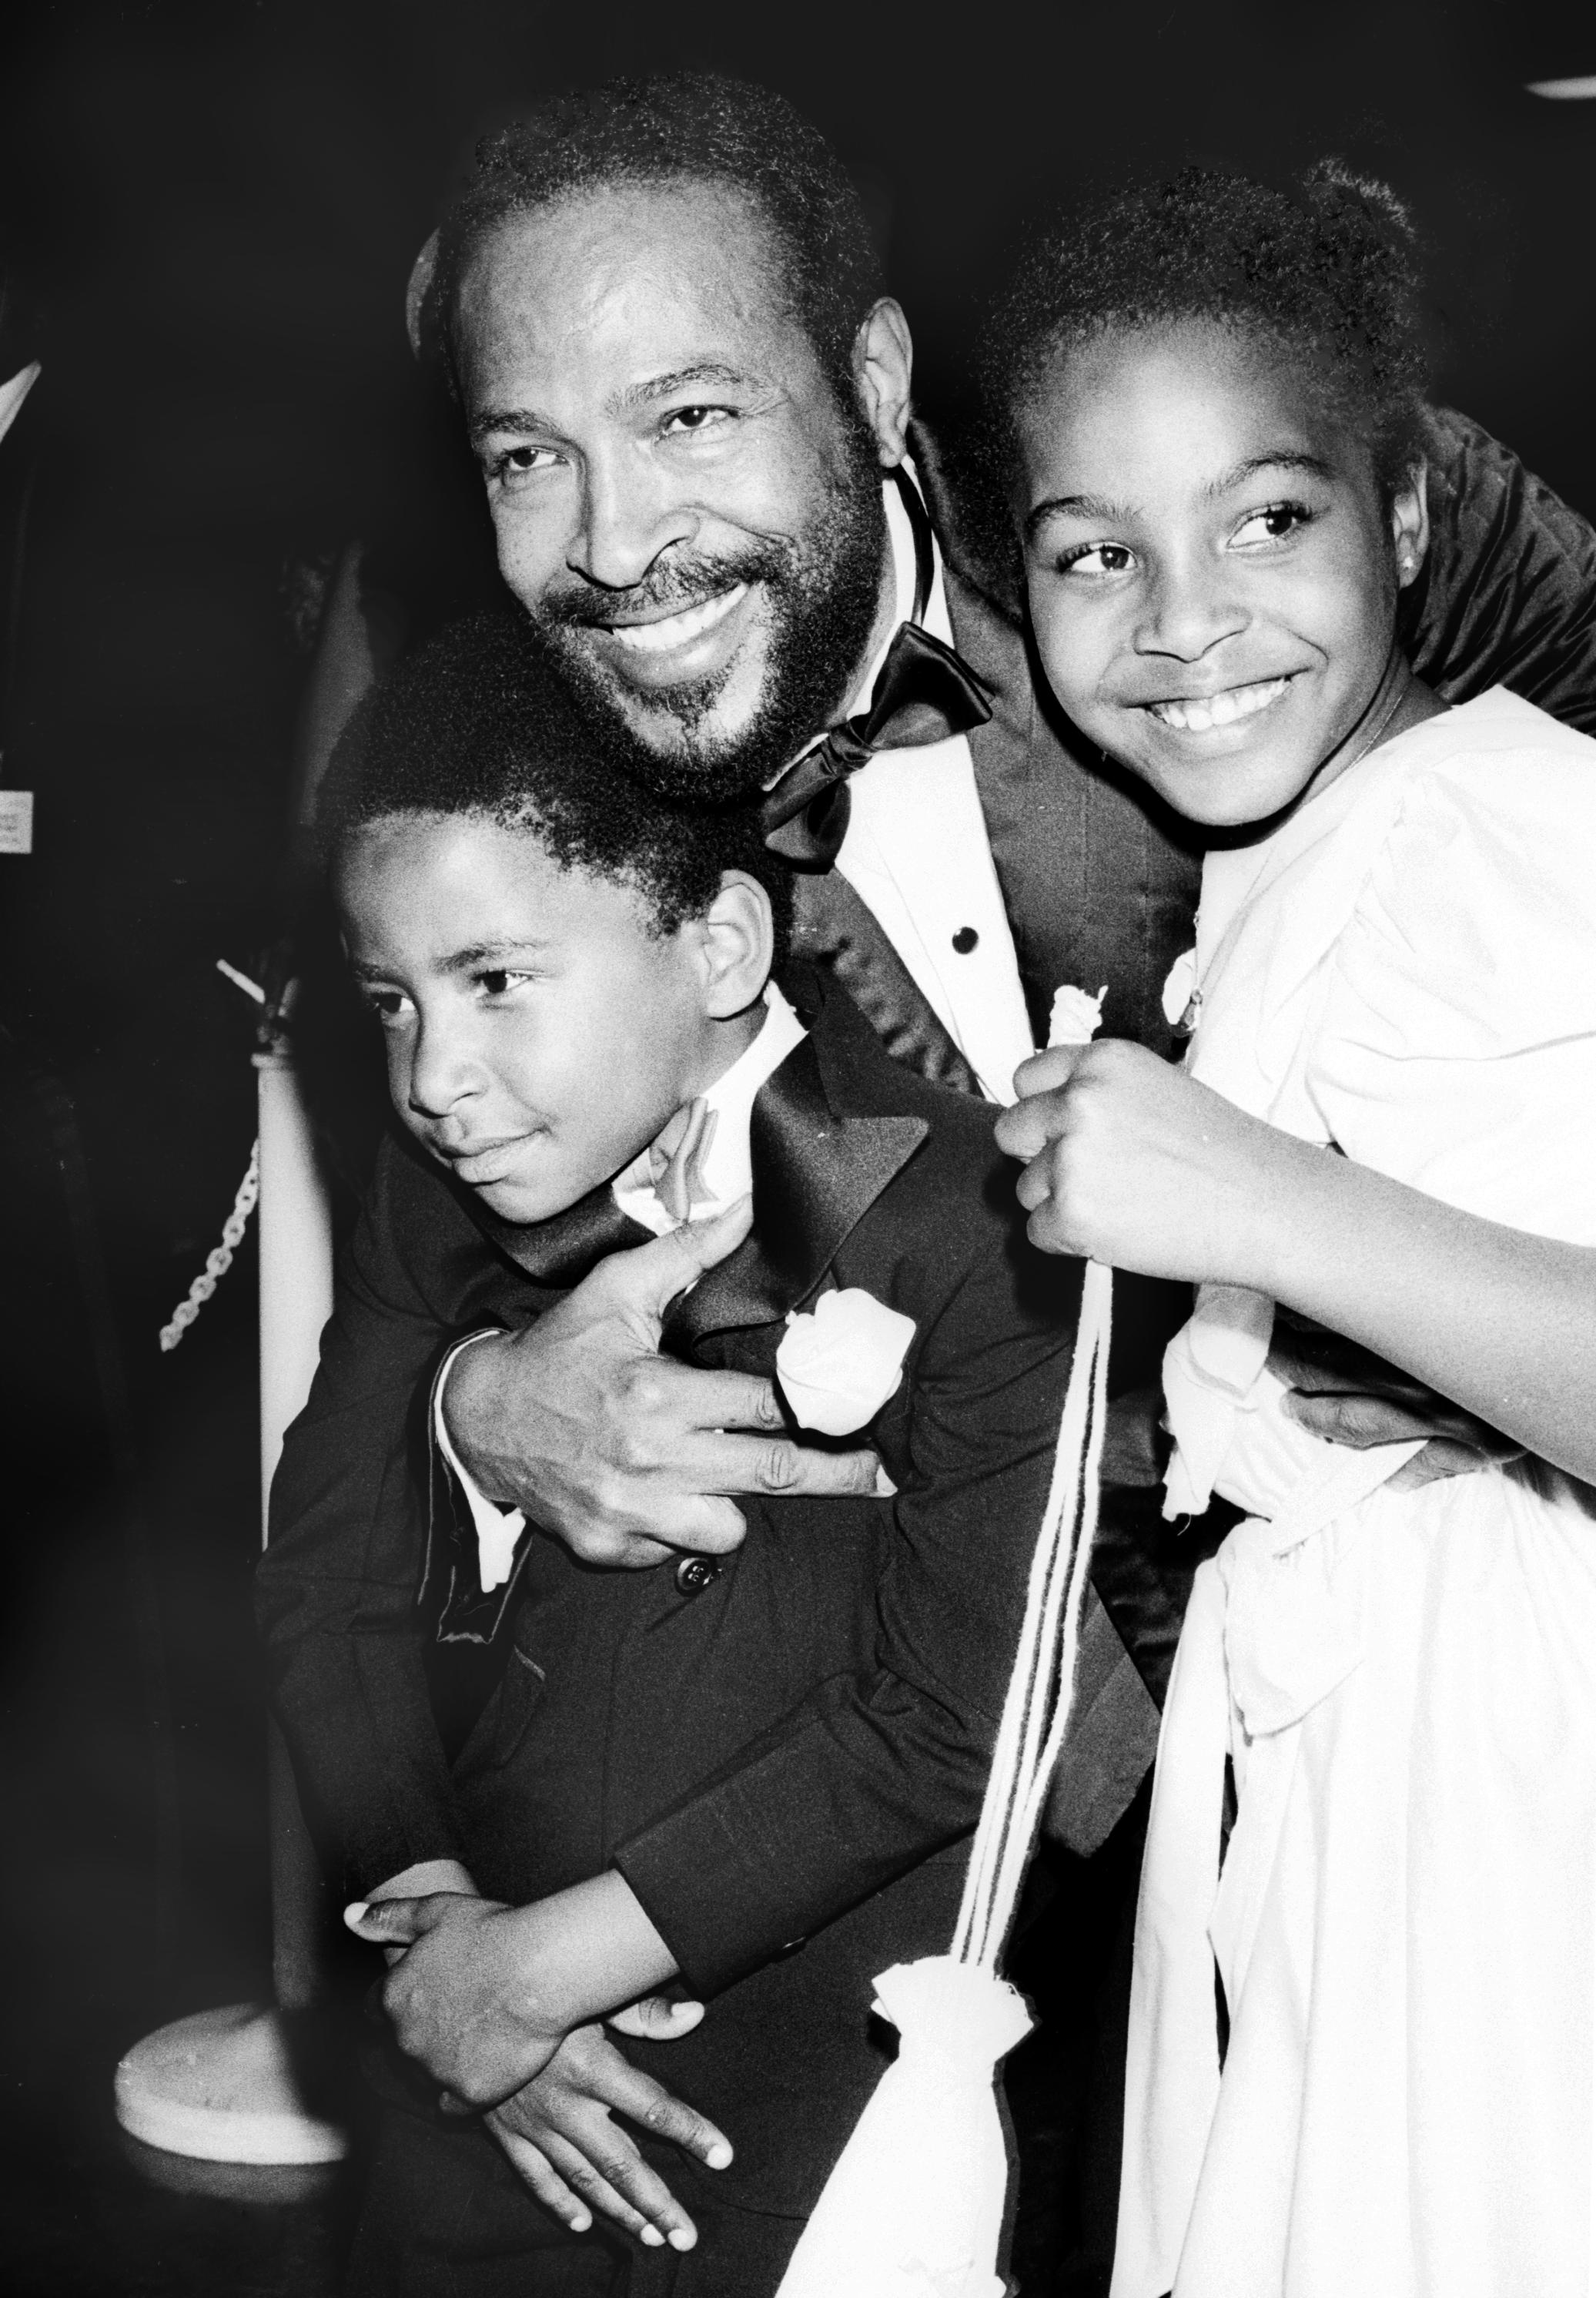 Soul singer Marvin Gaye hugs his children, Nona Gaye and Frankie Chirstian Gaye at an event in circa 1981. | Source: Getty Images